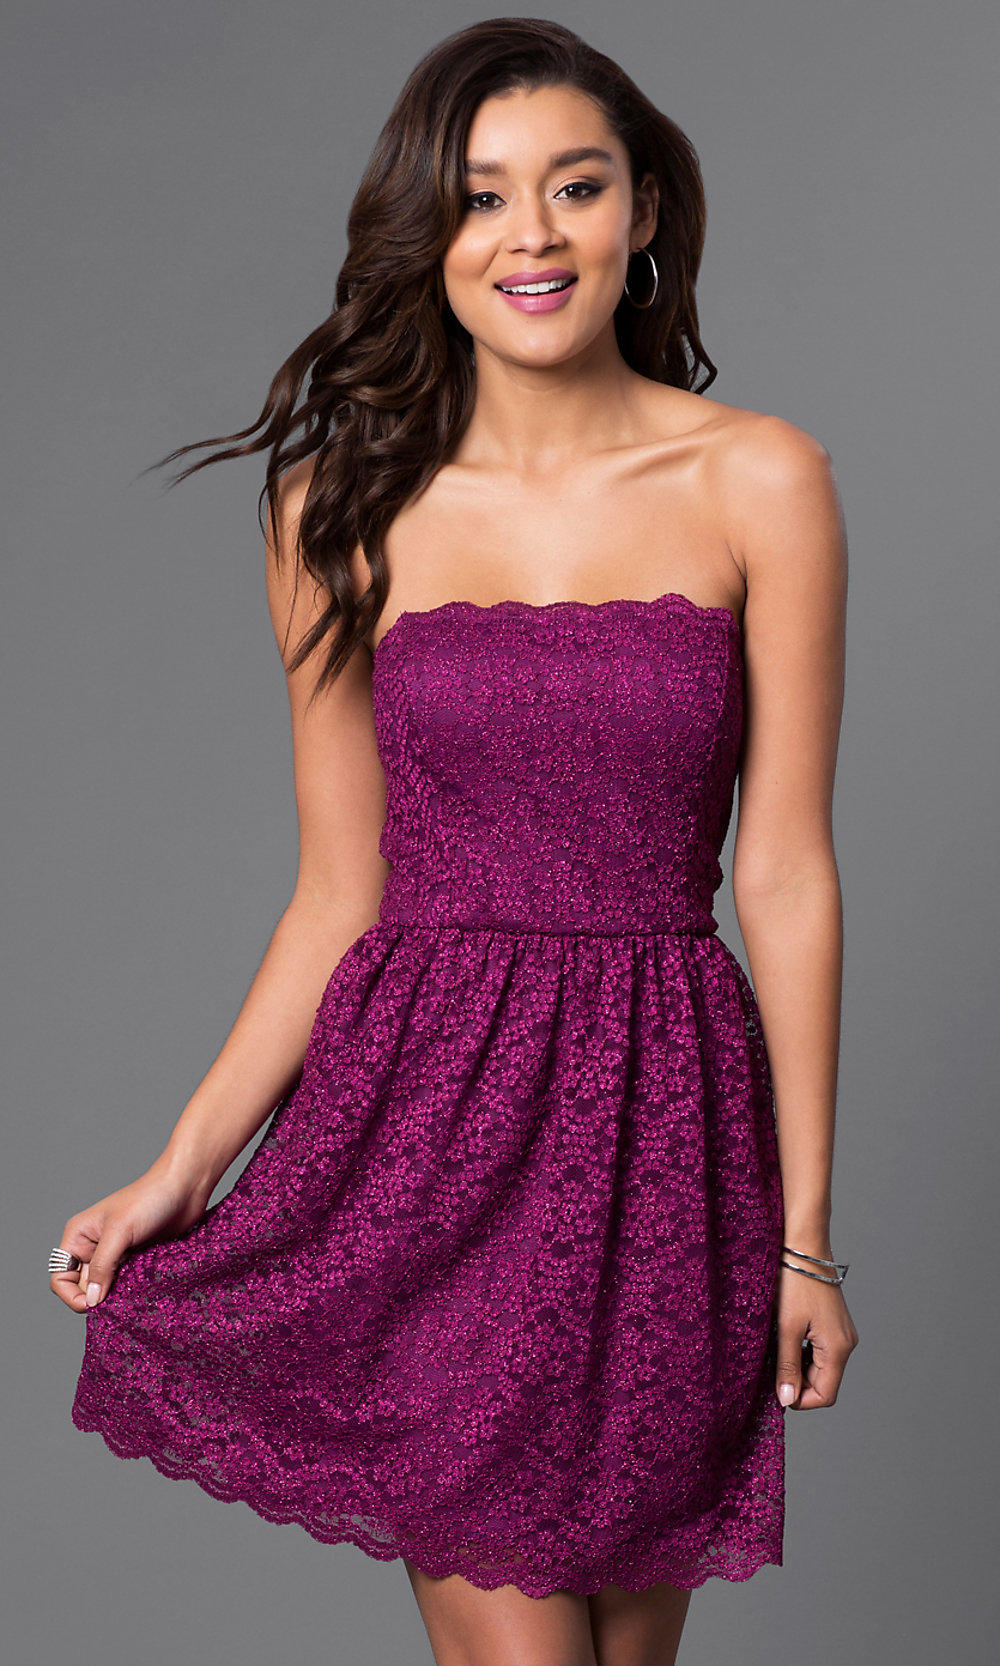 Short Trendy Lace Party Dresses - PromGirl